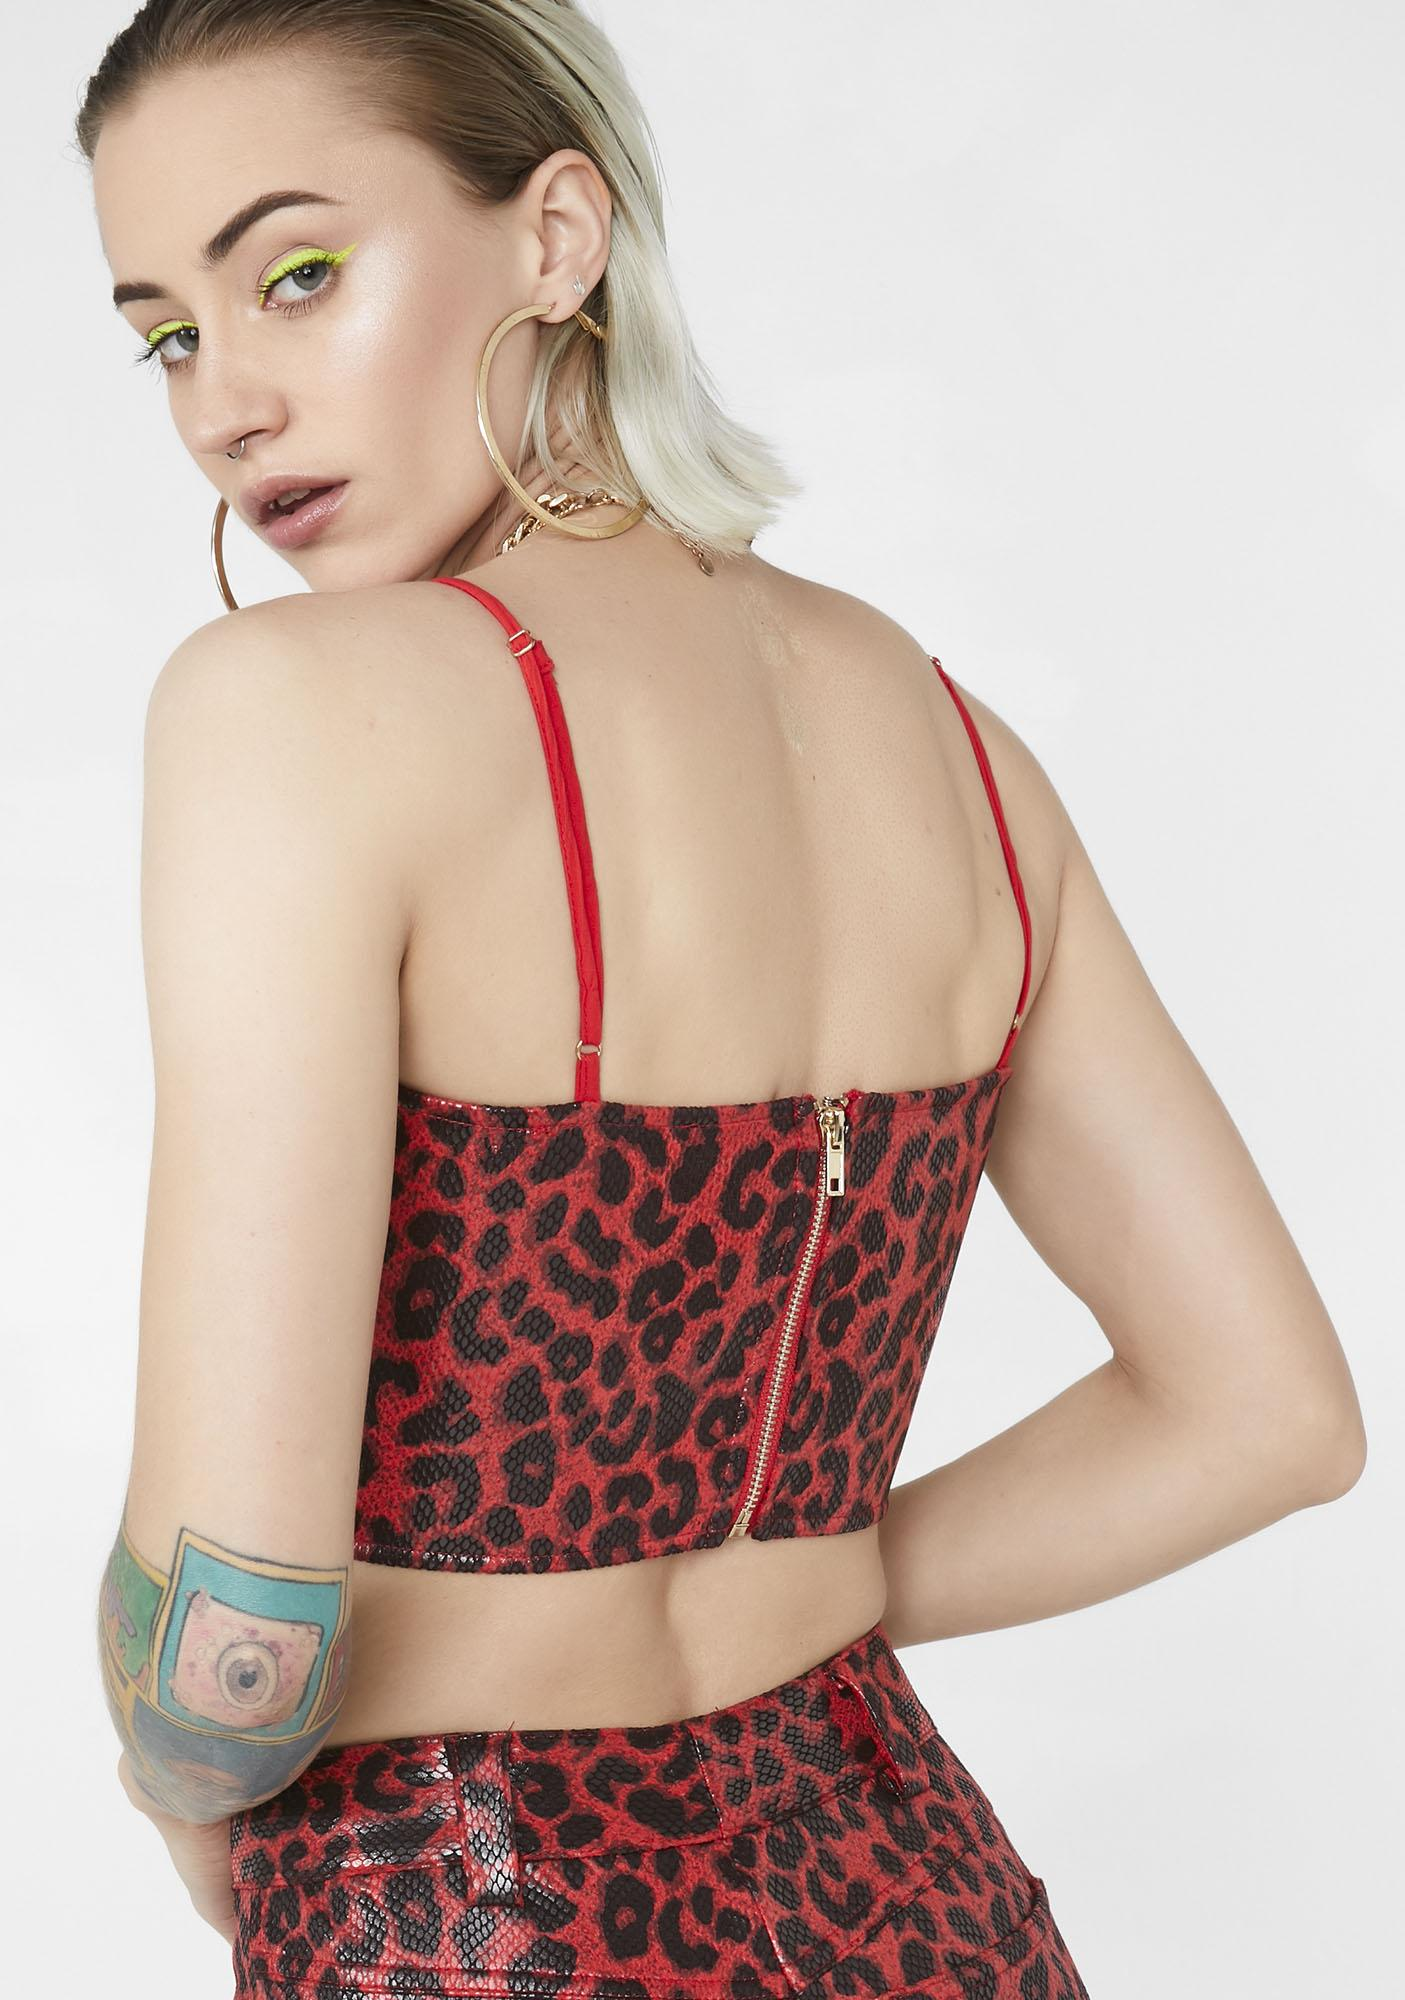 Jagger & Stone The Amy Crop Top